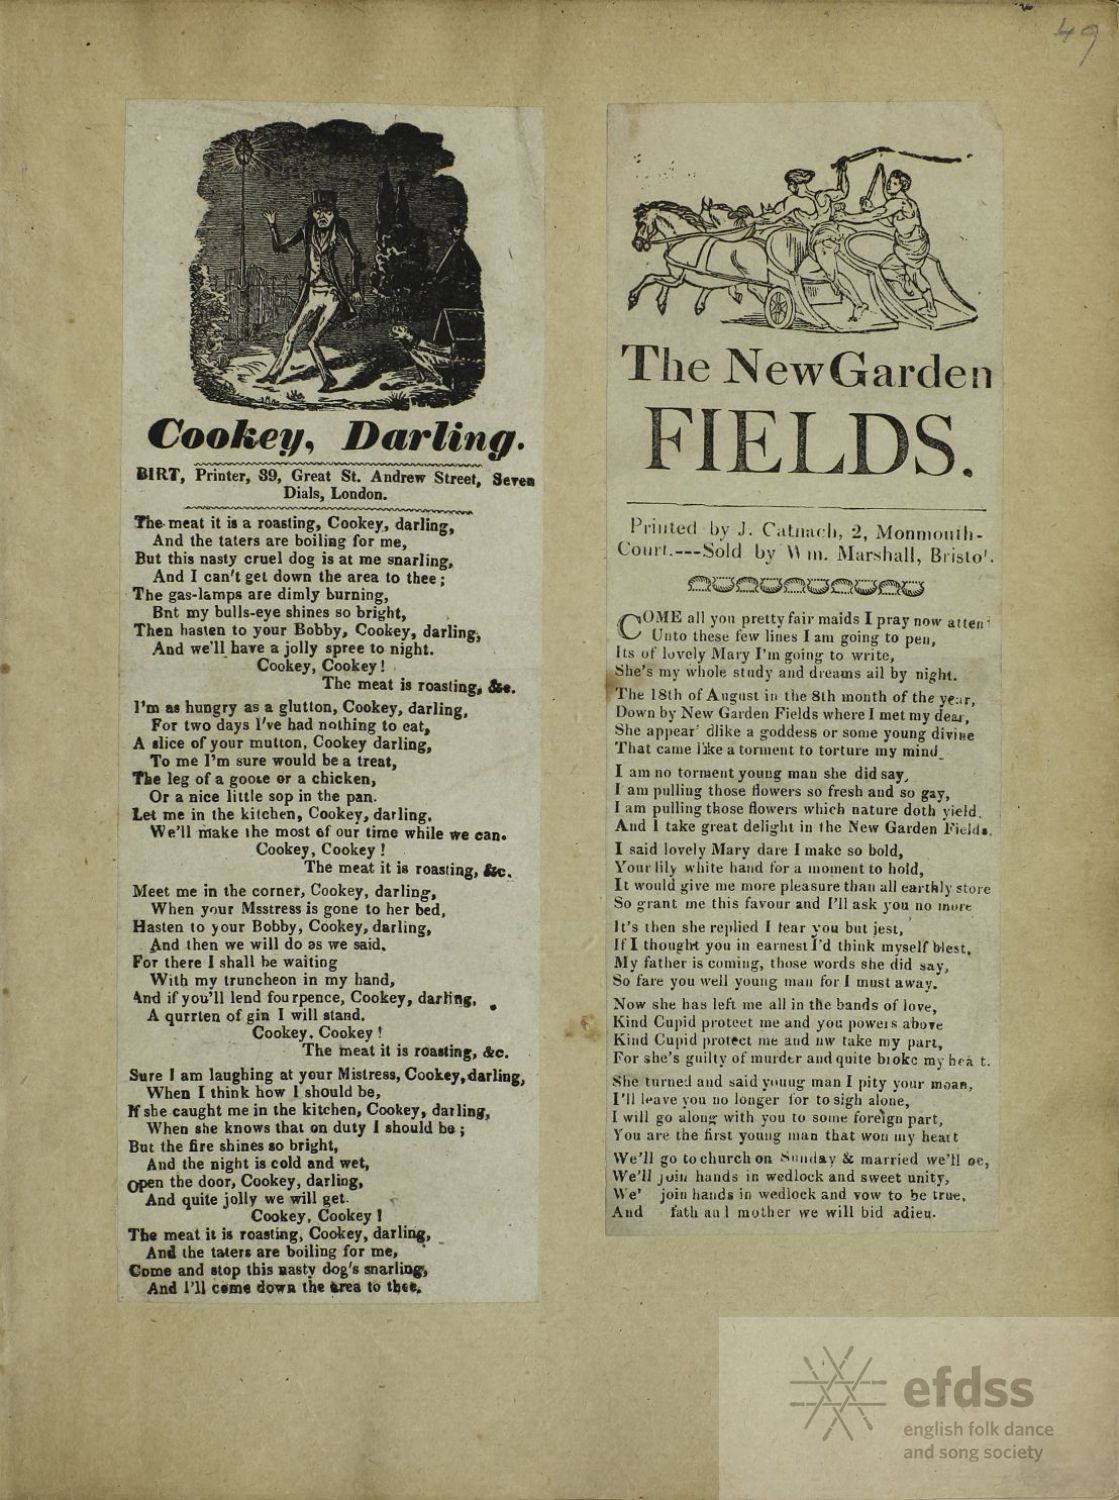 The New Garden Fields - Catnach broadside from the Frank Kidson Manuscript Collection, via the Full English.